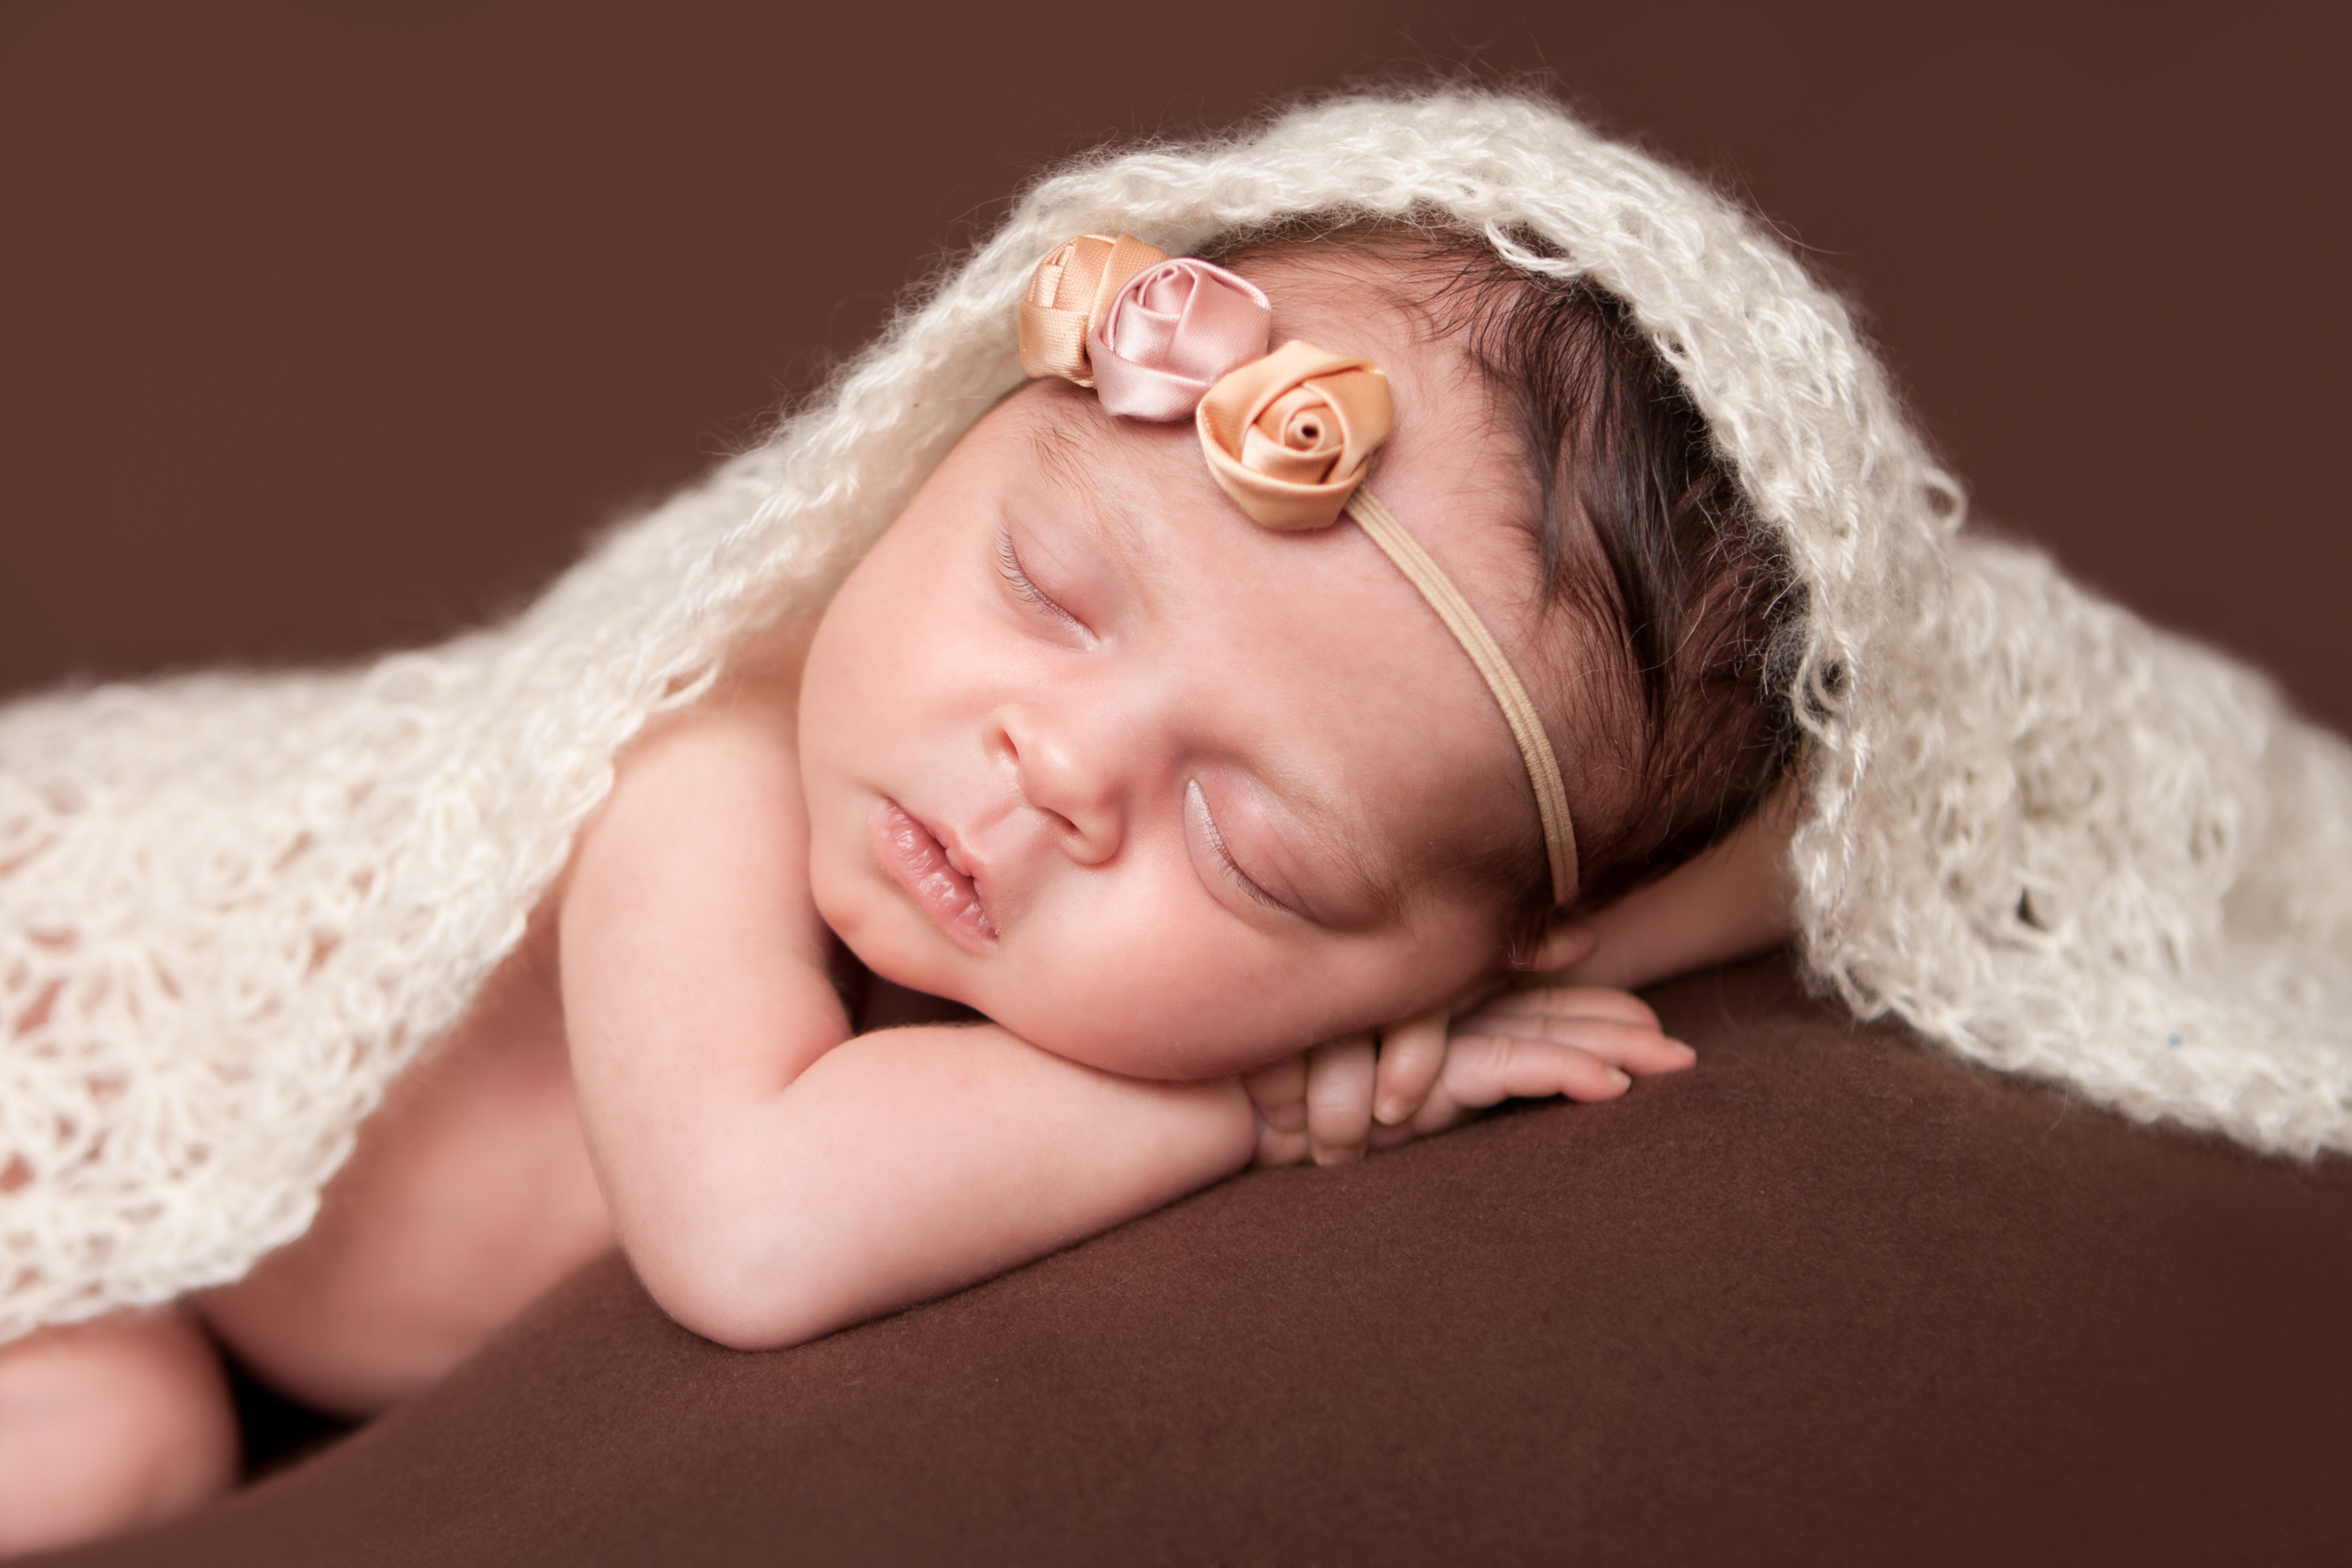 Newborn baby girl, shabby rosebud flower headband orange pink nude, brown backdrop fabric blanket, white creme crochet wrap, head on hands pose, sleeping baby pose on beanbag, Westchester County, New Rochelle, White Plains, Pelham, New York Newborn Photographer, Amanda Noelle Photography